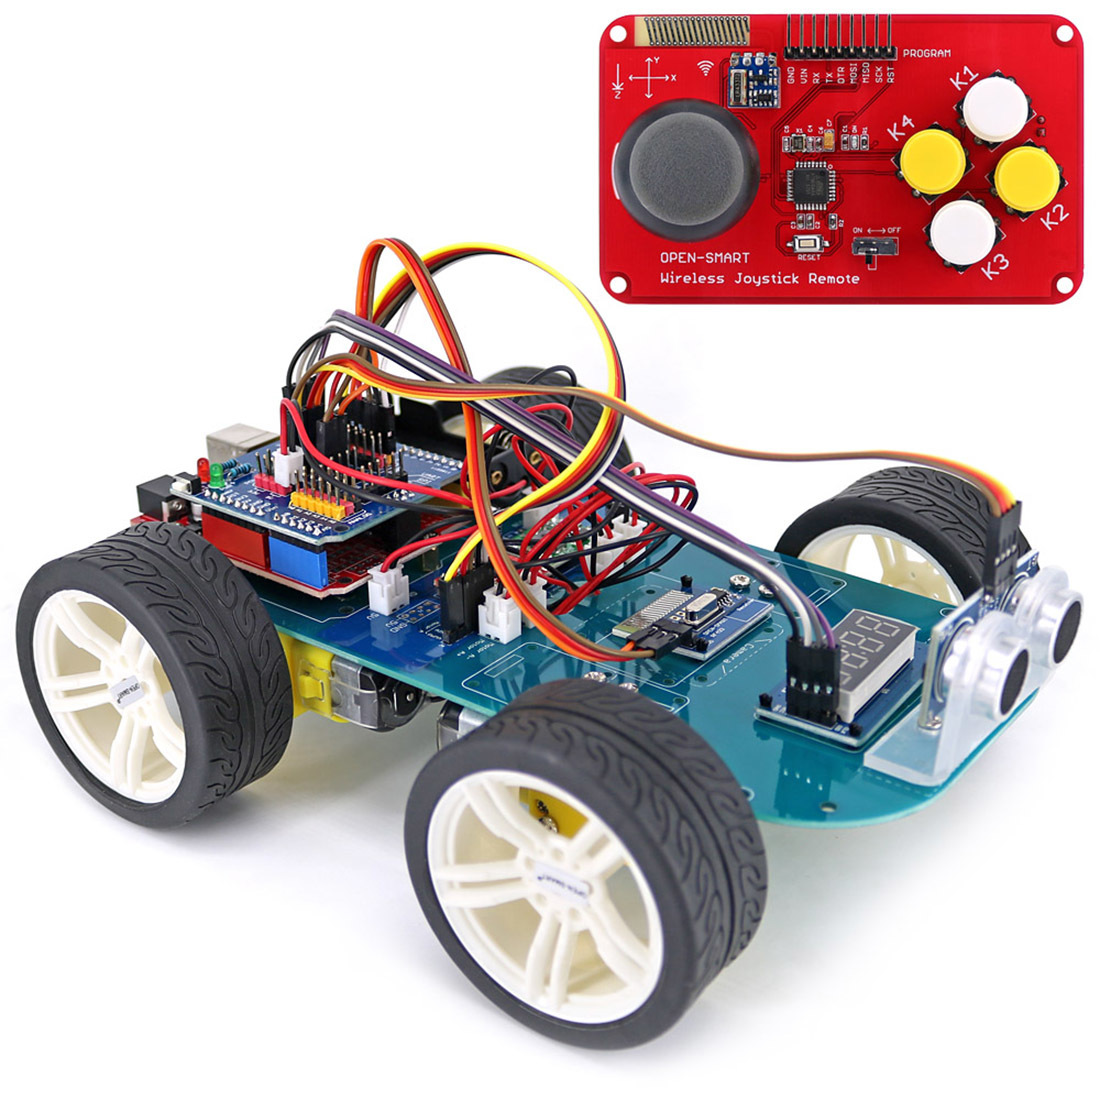 New 4WD Wireless Joystick DIY Remote Control Smart Car Programmable High Tech Toy Kit With Tutorial For Arduino For R3 Nano HotNew 4WD Wireless Joystick DIY Remote Control Smart Car Programmable High Tech Toy Kit With Tutorial For Arduino For R3 Nano Hot